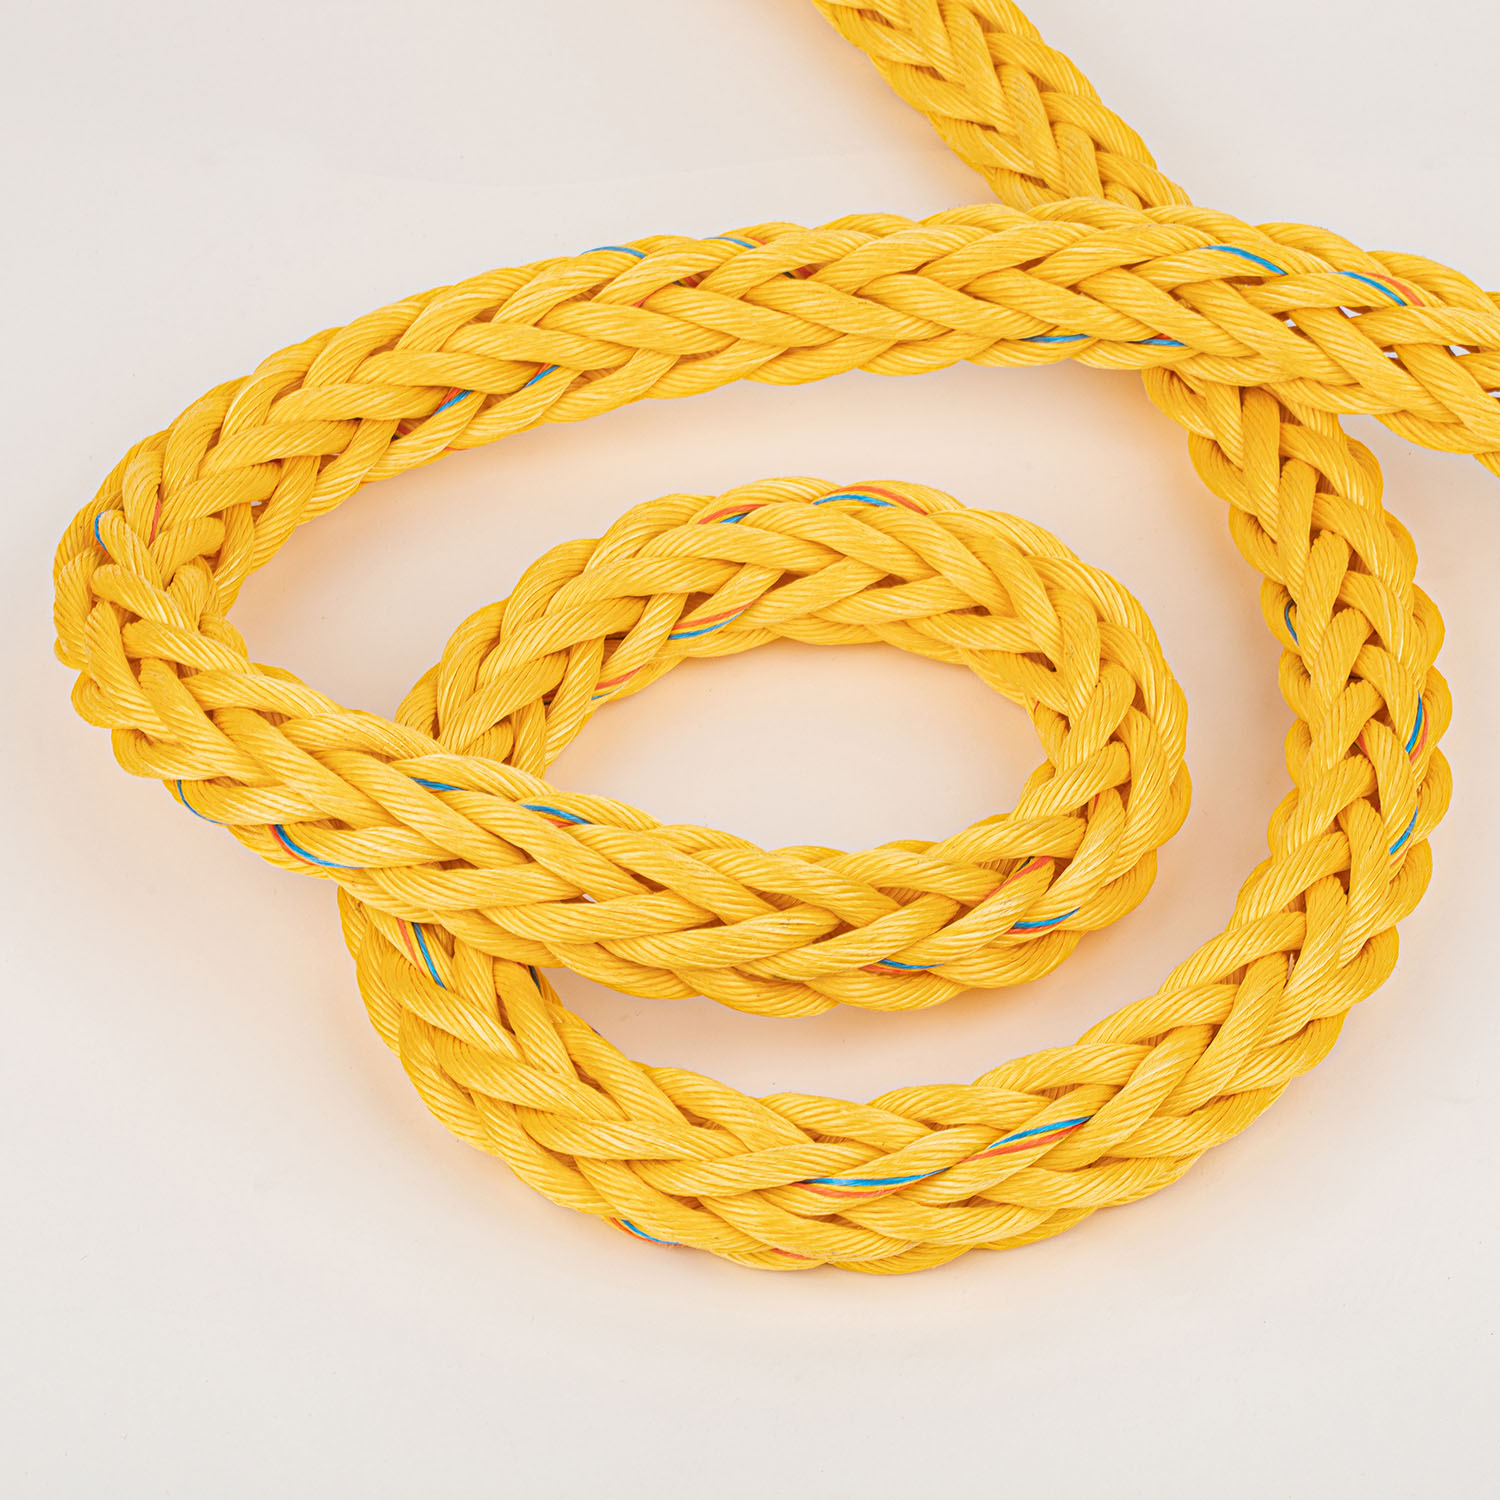 12 Strand 4 Inch 32mm Yellow Diameter PP Rope Lifting Rope